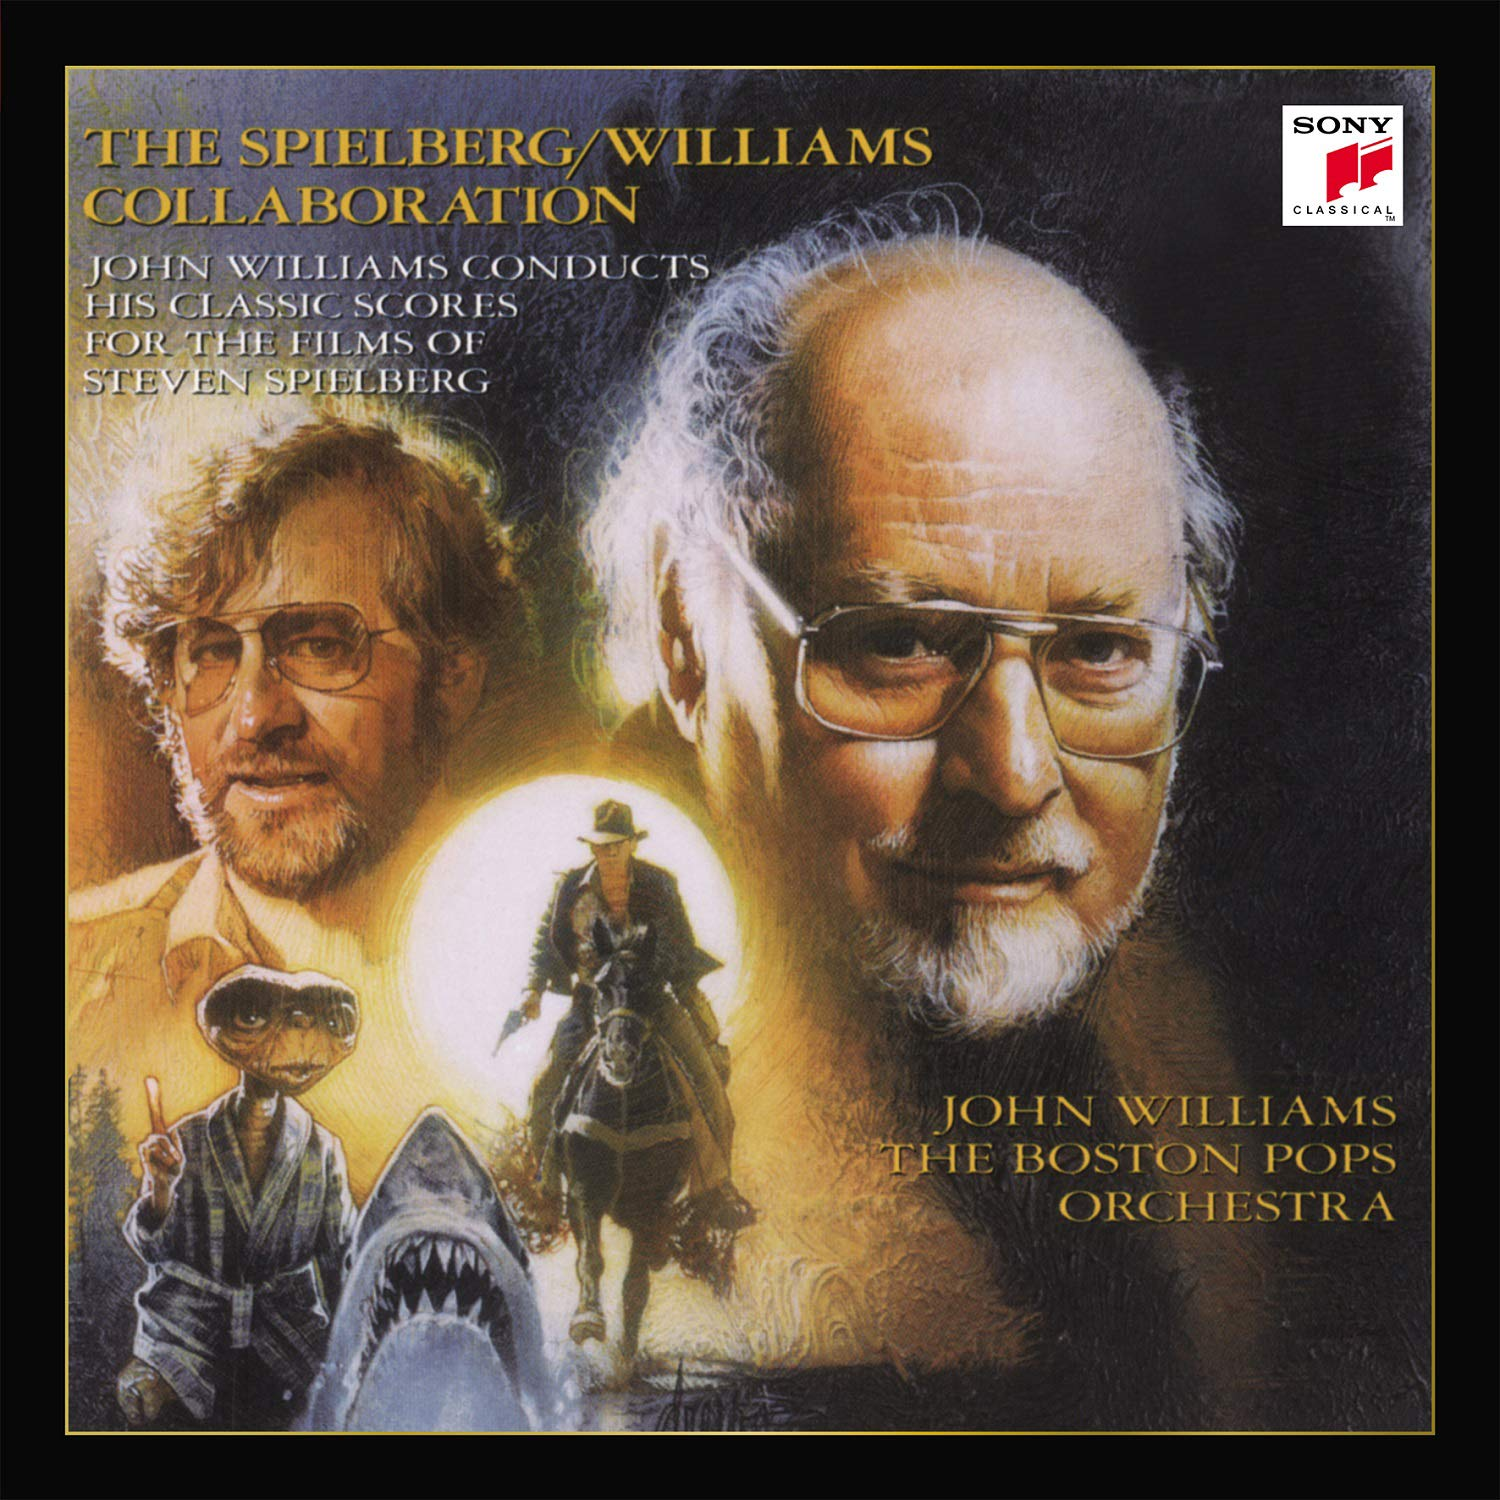 John & Steven Spielberg Williams - The Spielberg / Williams Collaboration